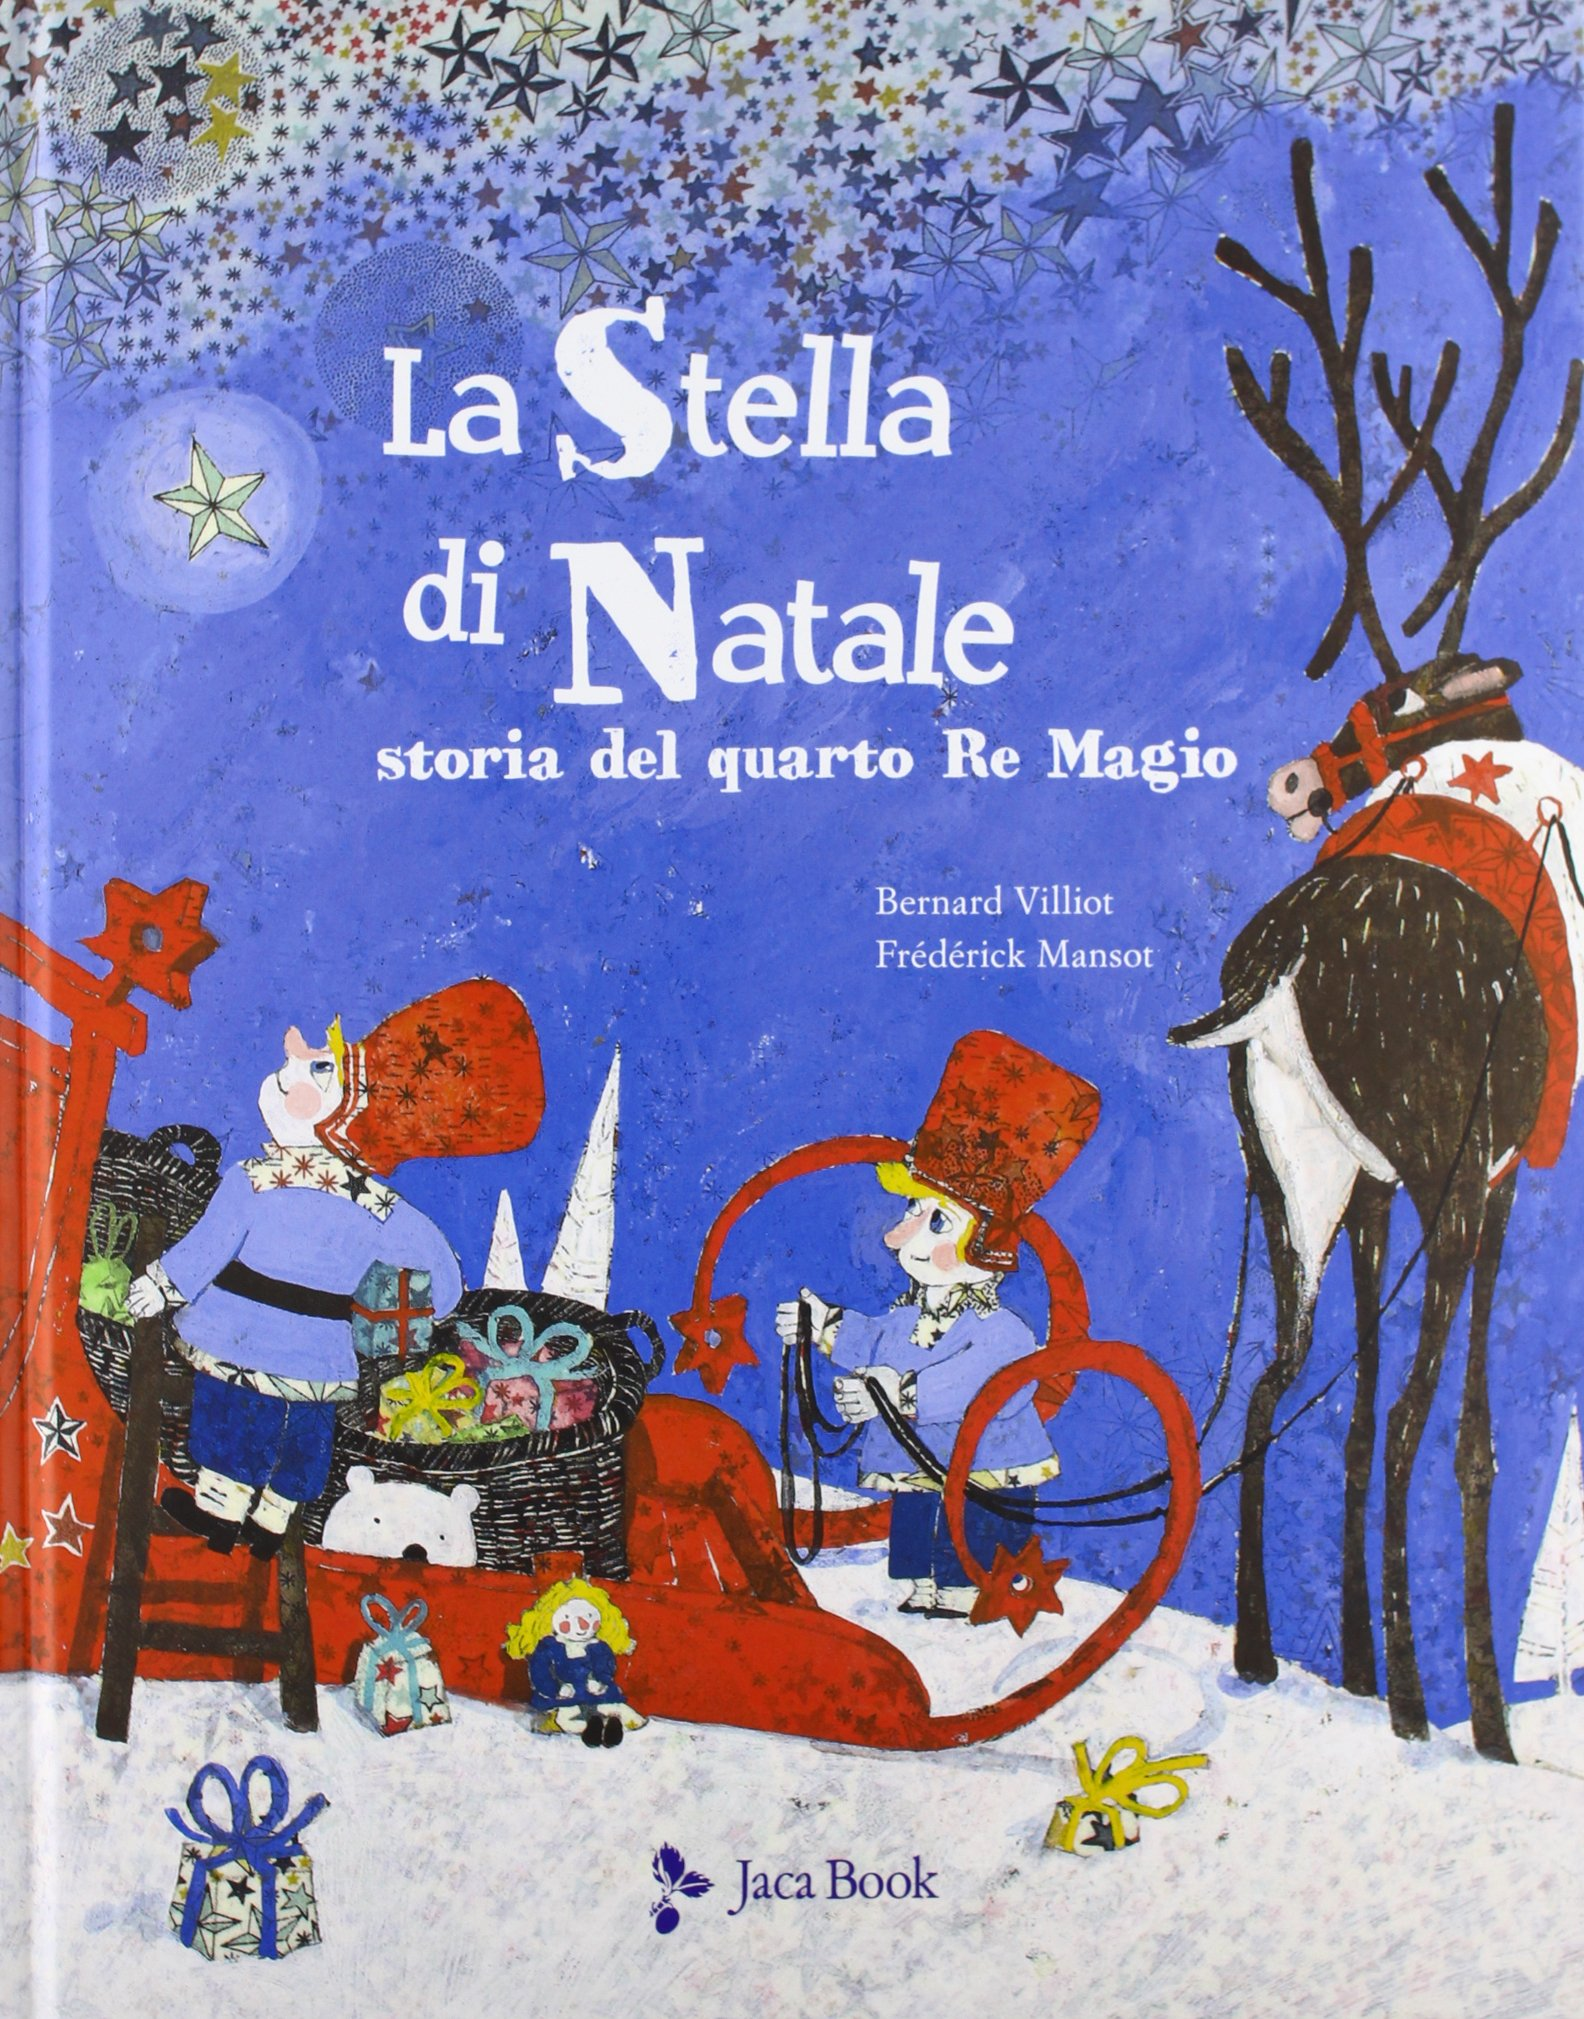 Stella Di Natale Destate.Amazon It La Stella Di Natale Il Racconto Del Quarto Re Magio